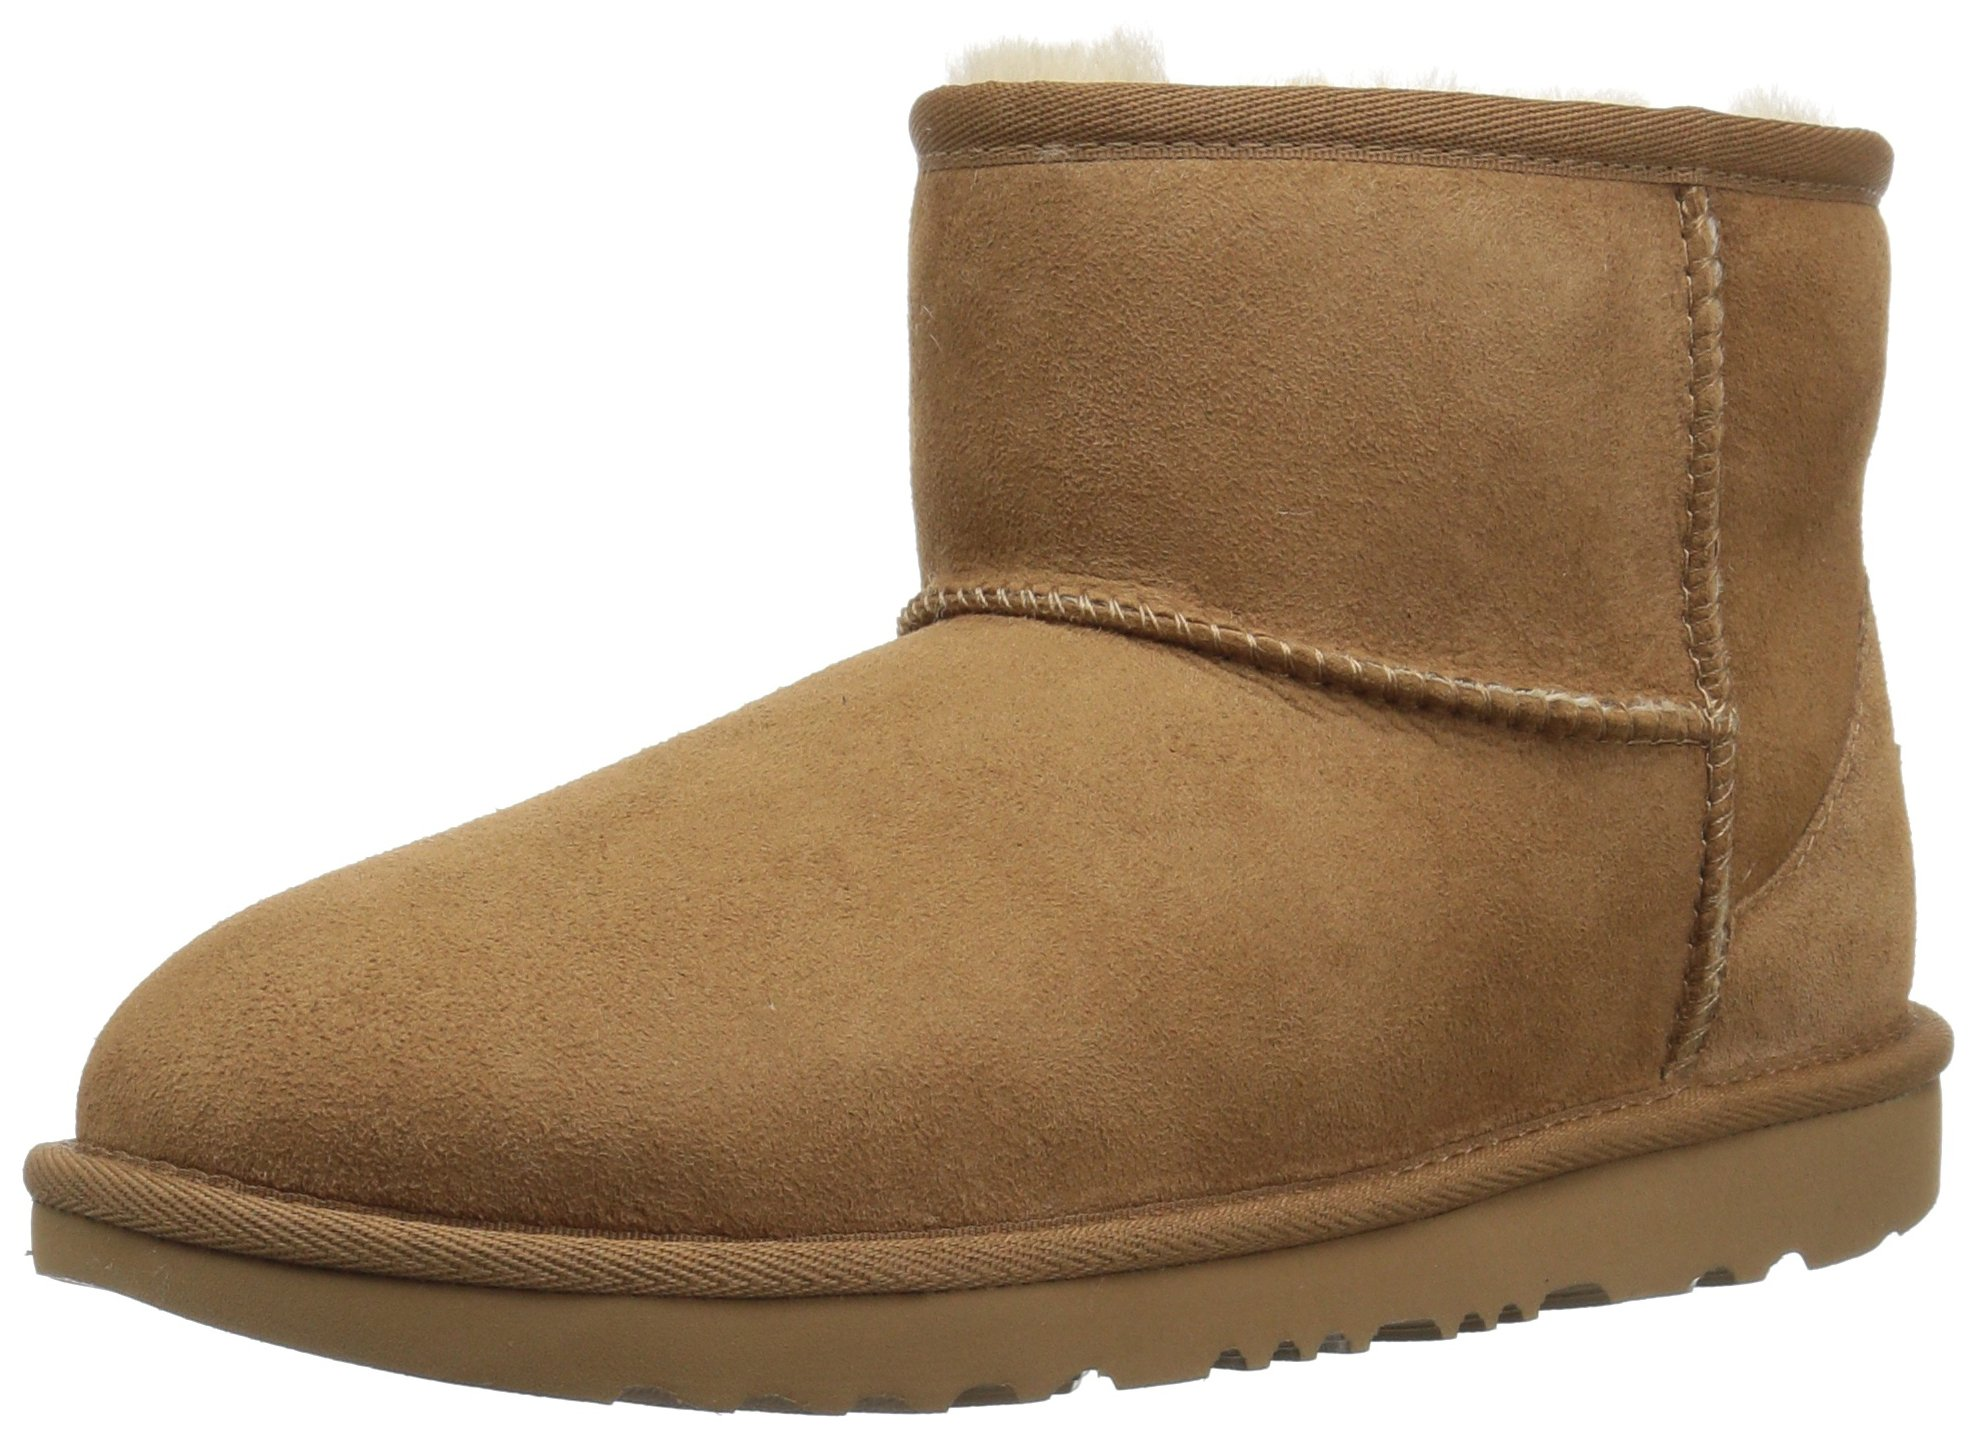 UGG Kids K Classic Mini II Pull-On Boot, Chestnut, 4 M US Big Kid